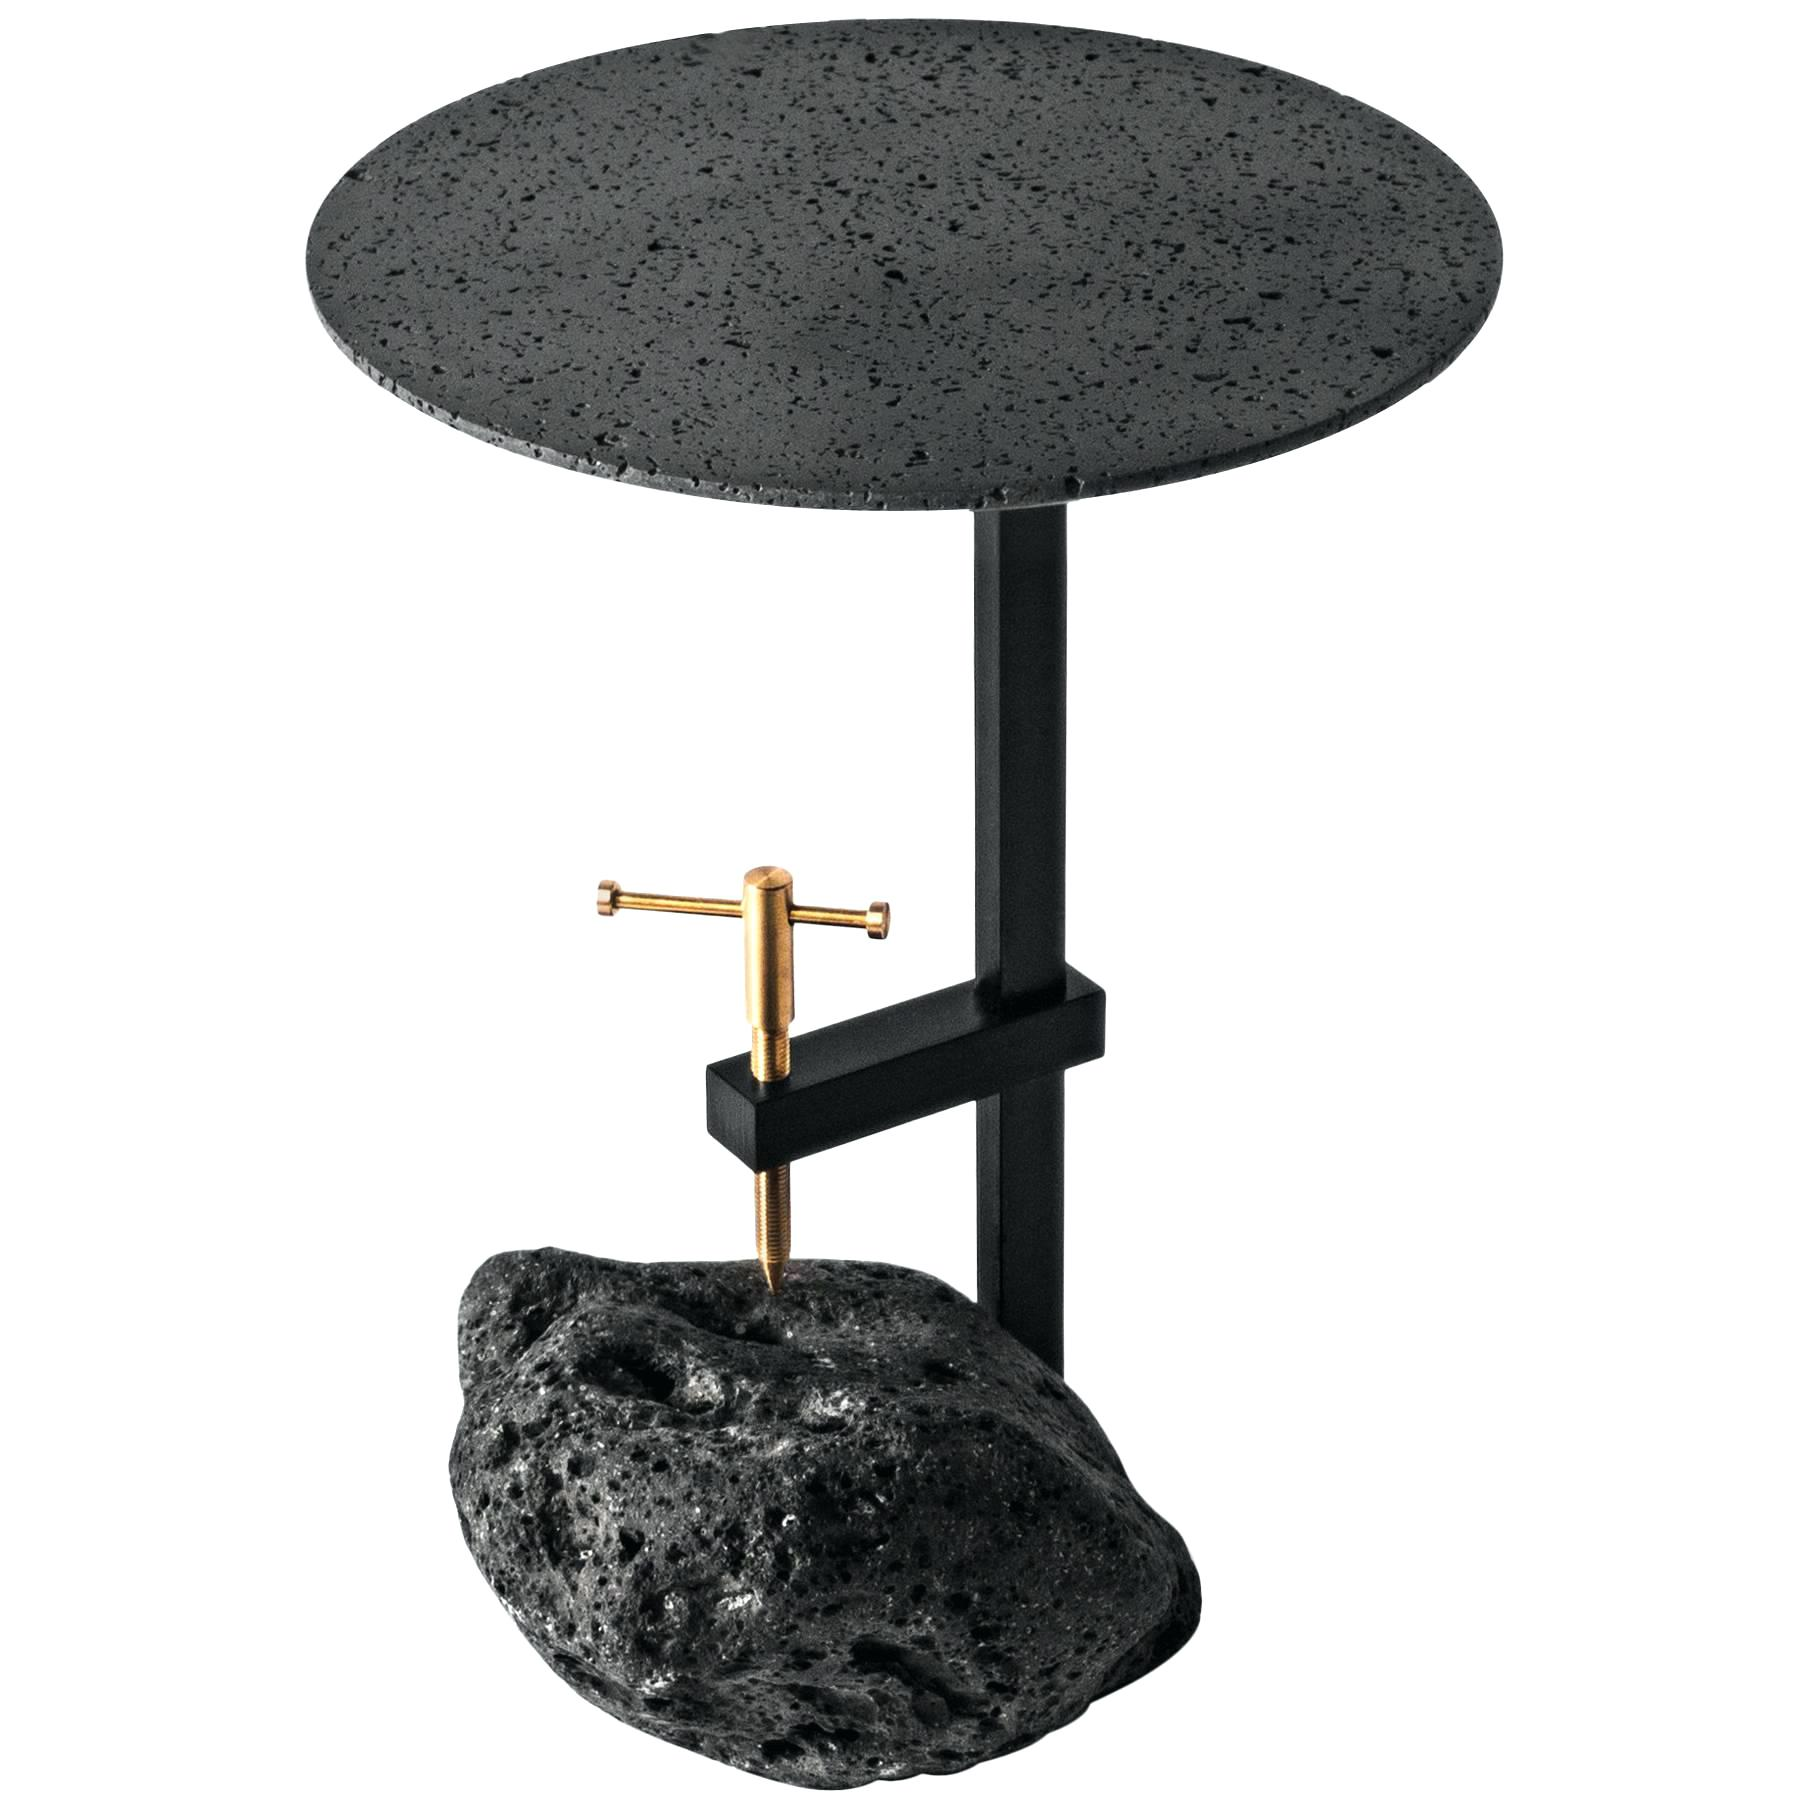 stone side table top outdoor regarding black lava design for designs patio accent round lamp shades floor lamps white linen placemats threshold windham one door storage cabinet